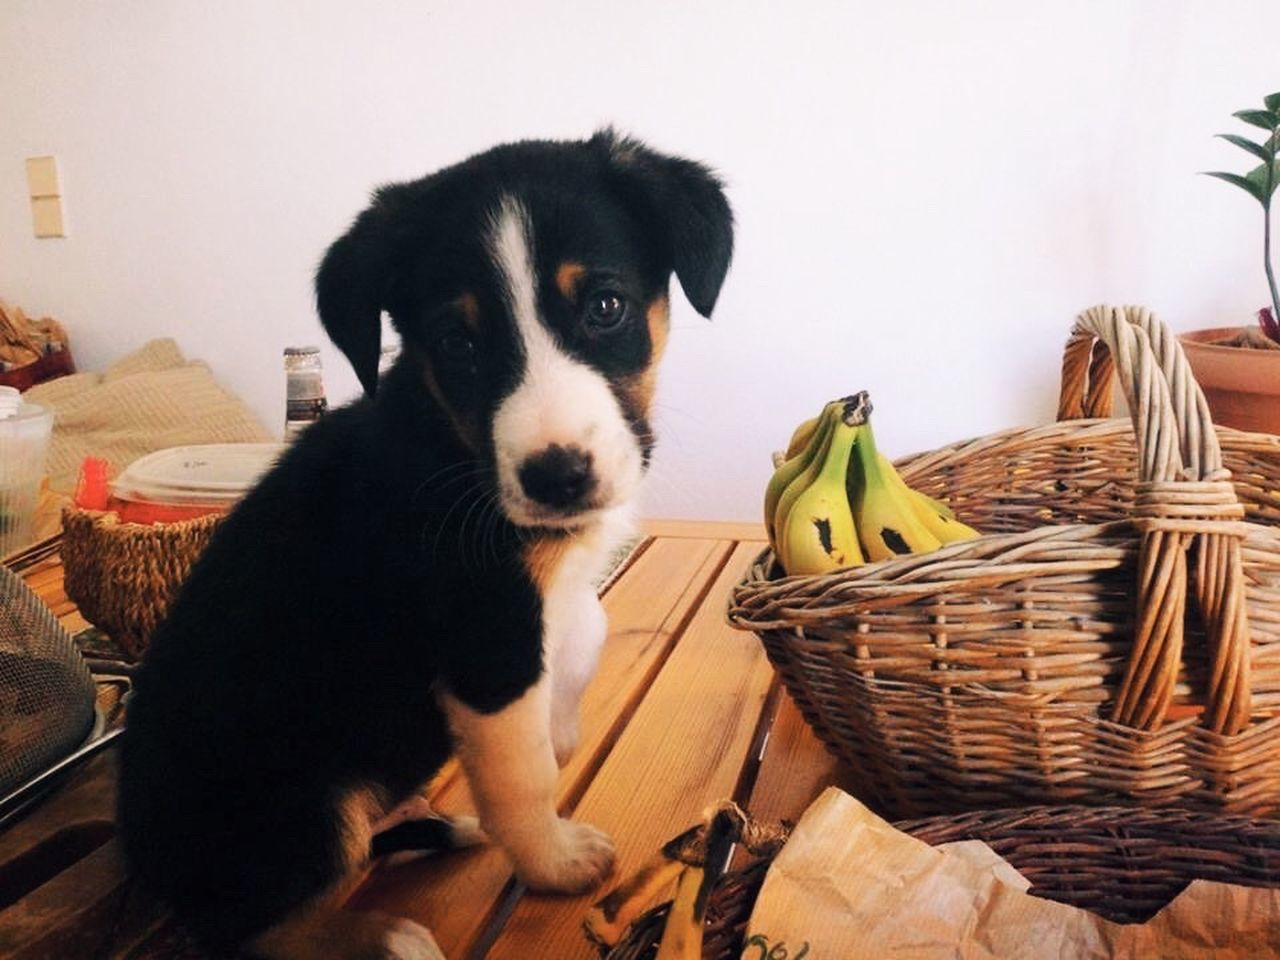 basket, pets, domestic animals, mammal, one animal, dog, animal themes, indoors, no people, day, close-up